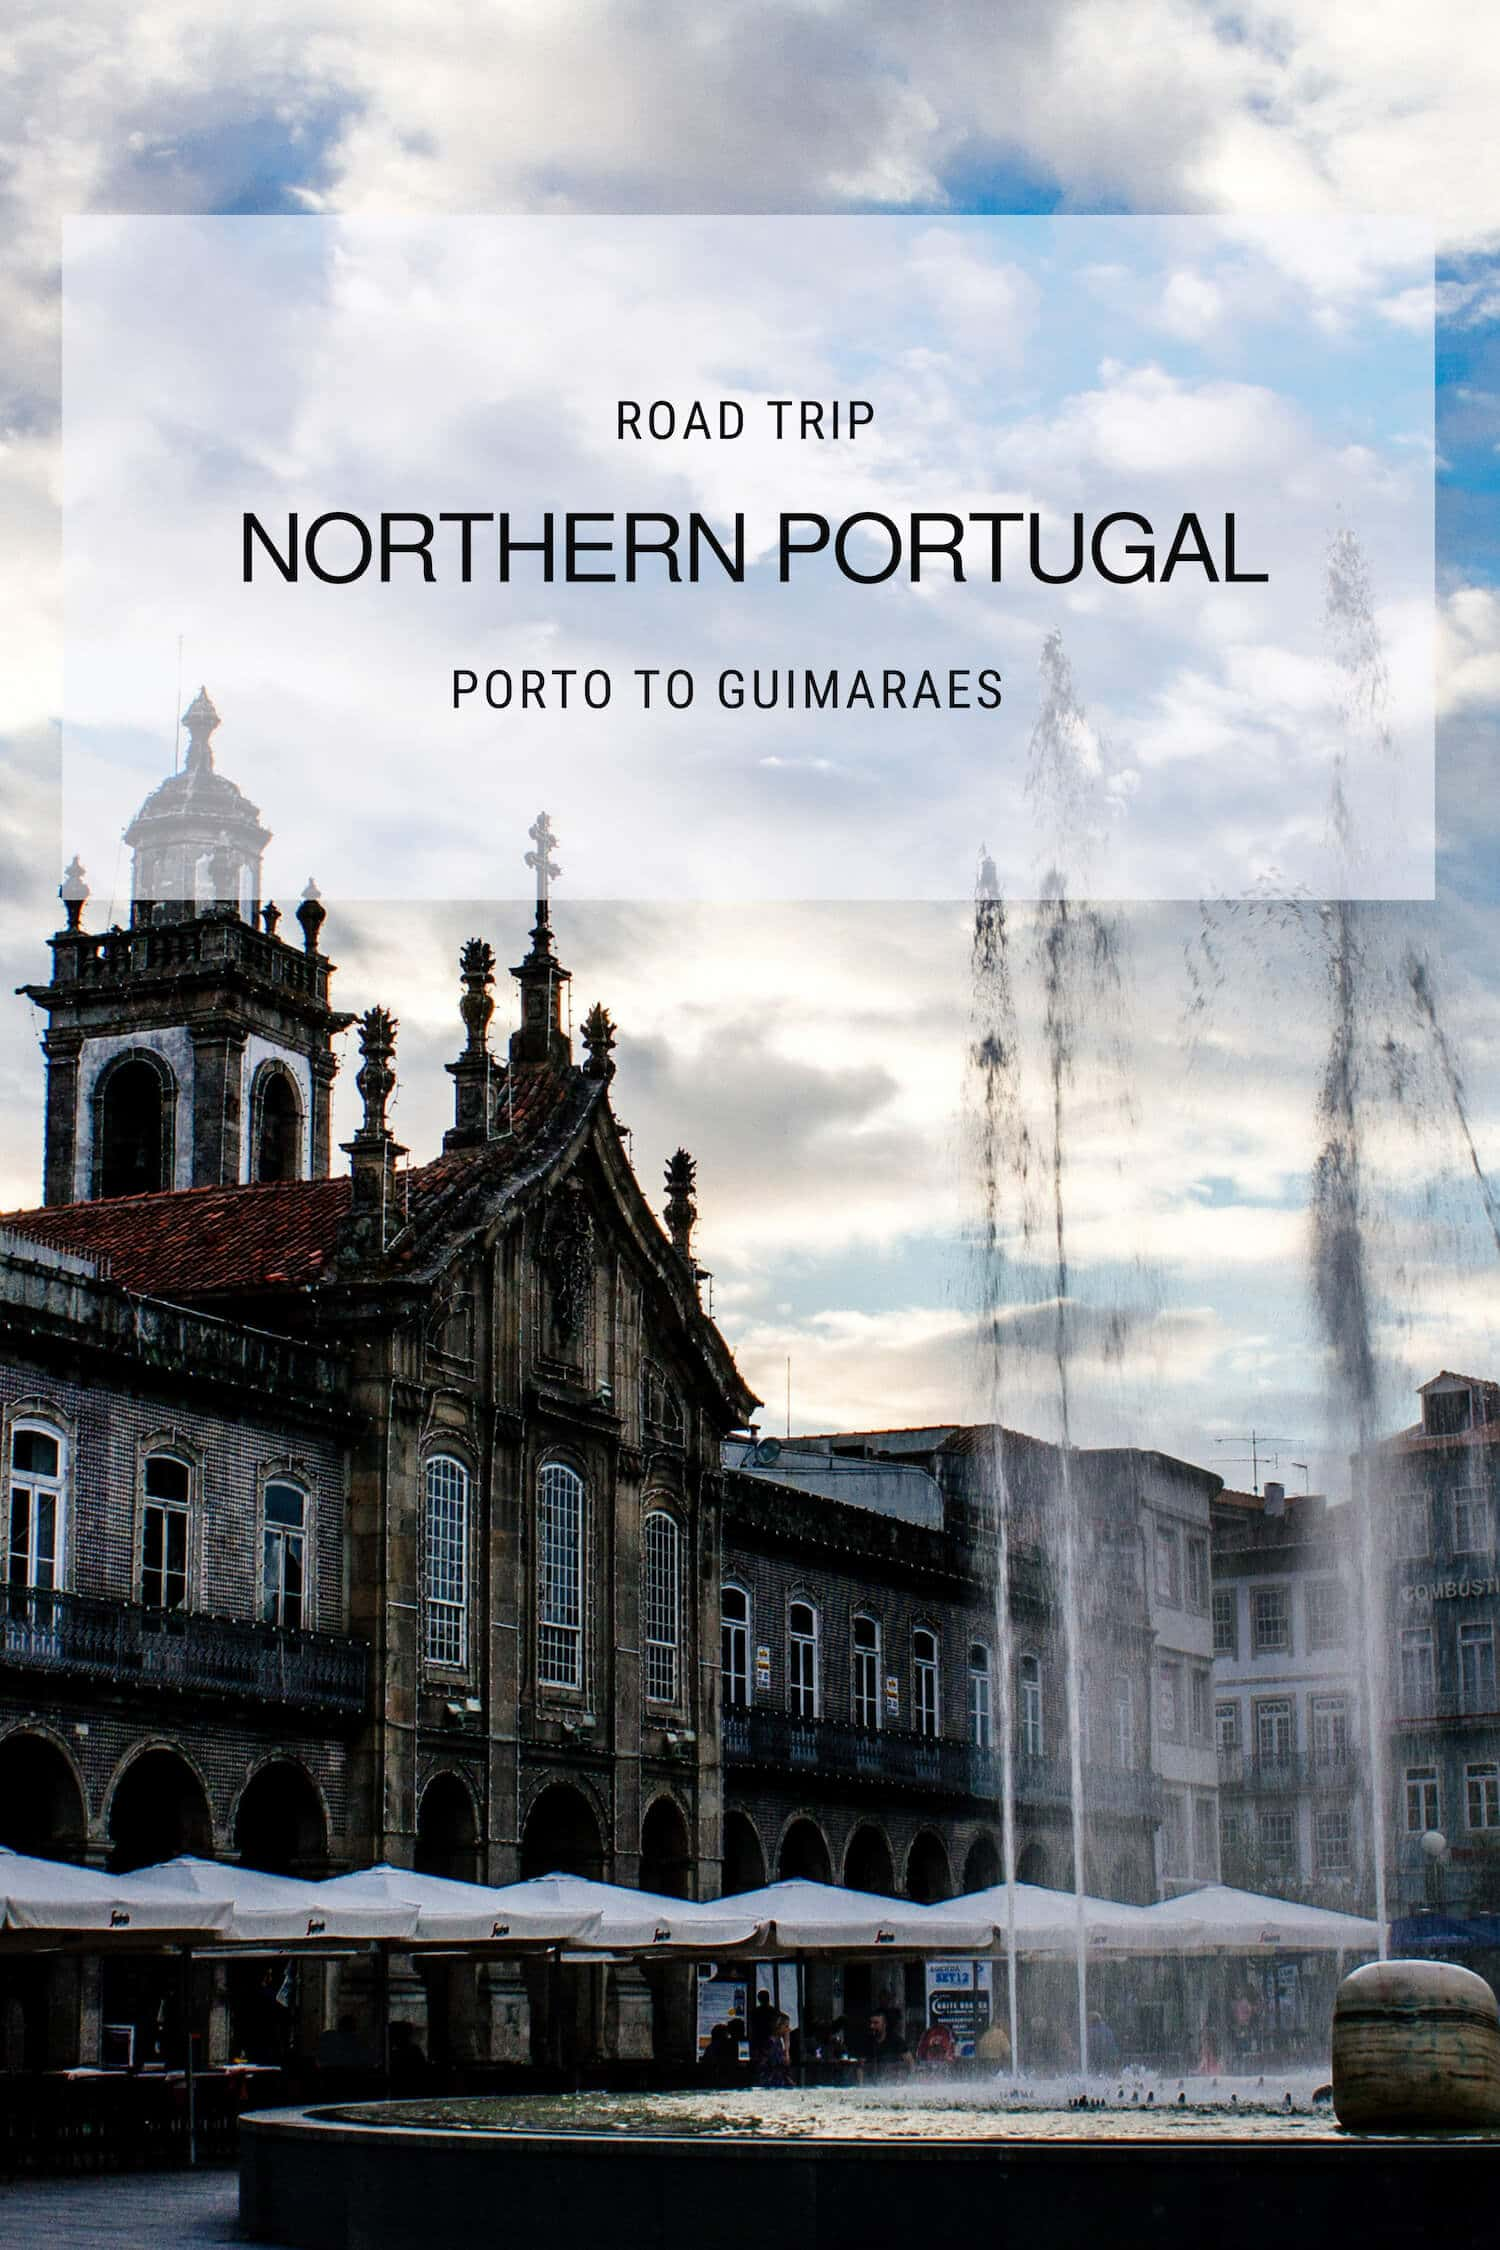 Northern Portugal Road Trip